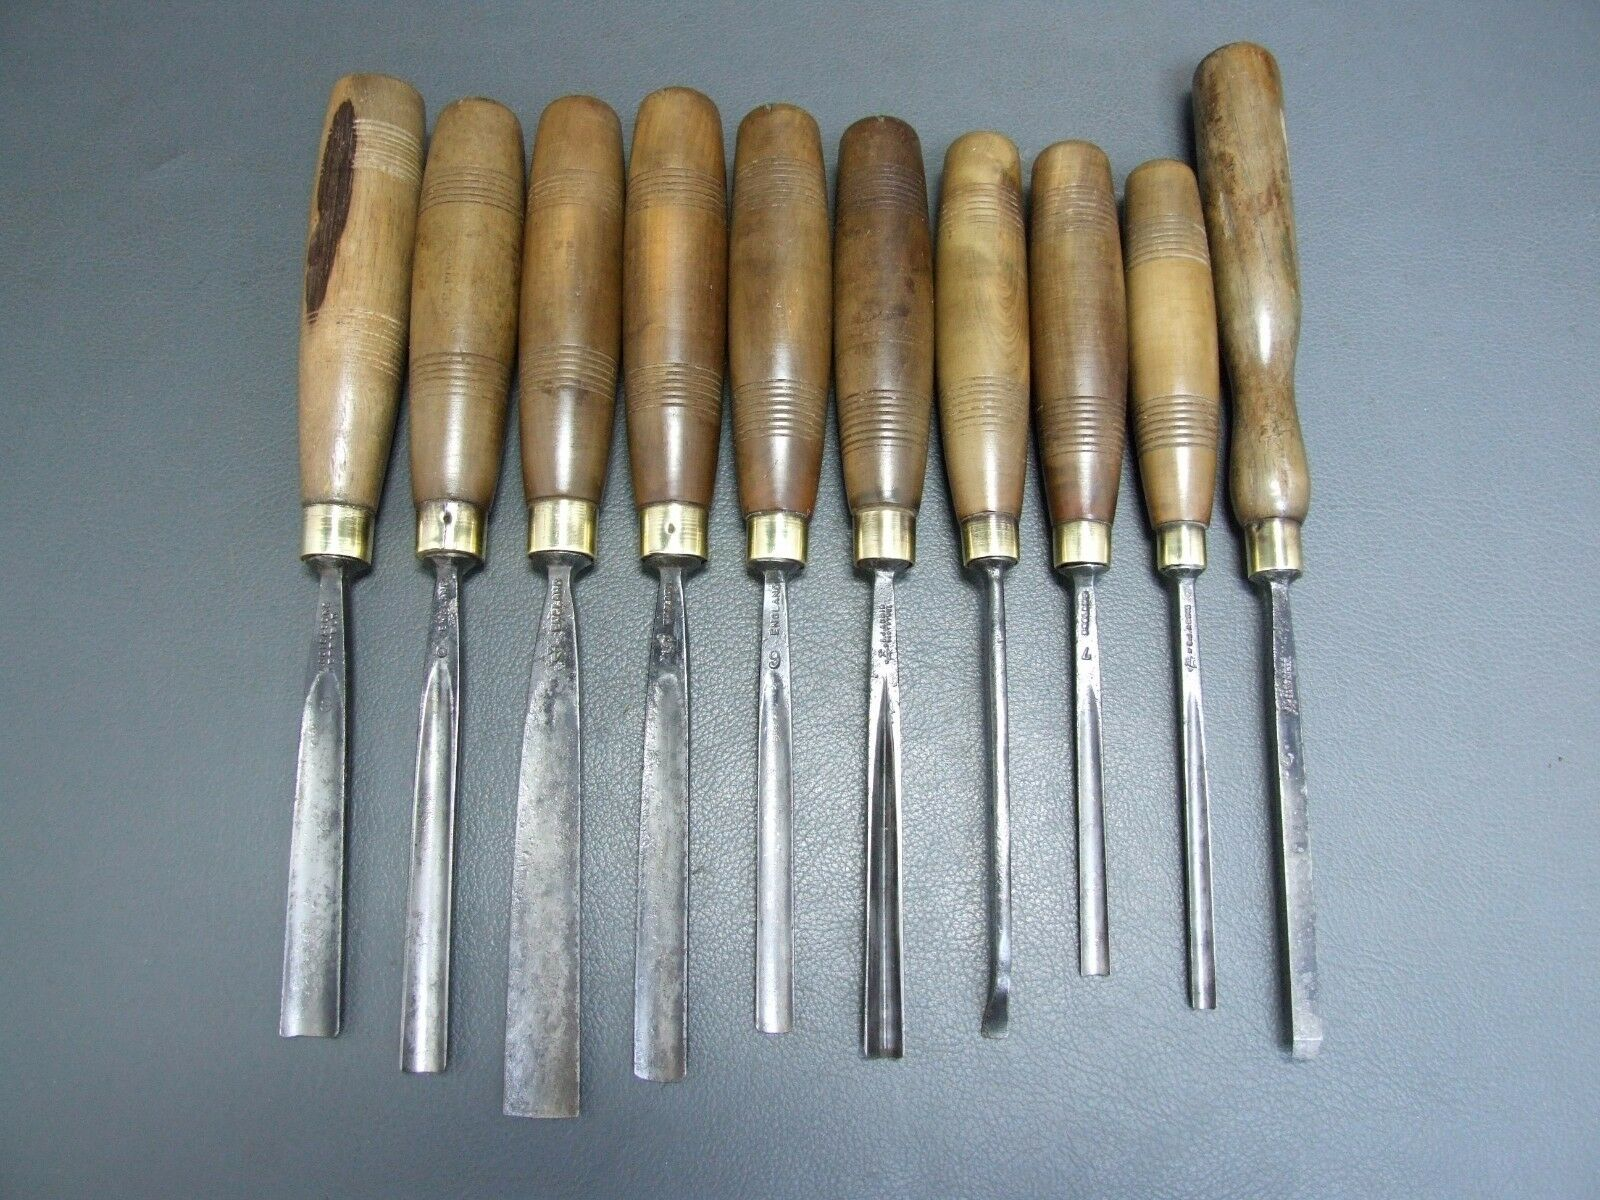 ... chisels & gouges old tools by S J Addis • £99.99 - PicClick UK